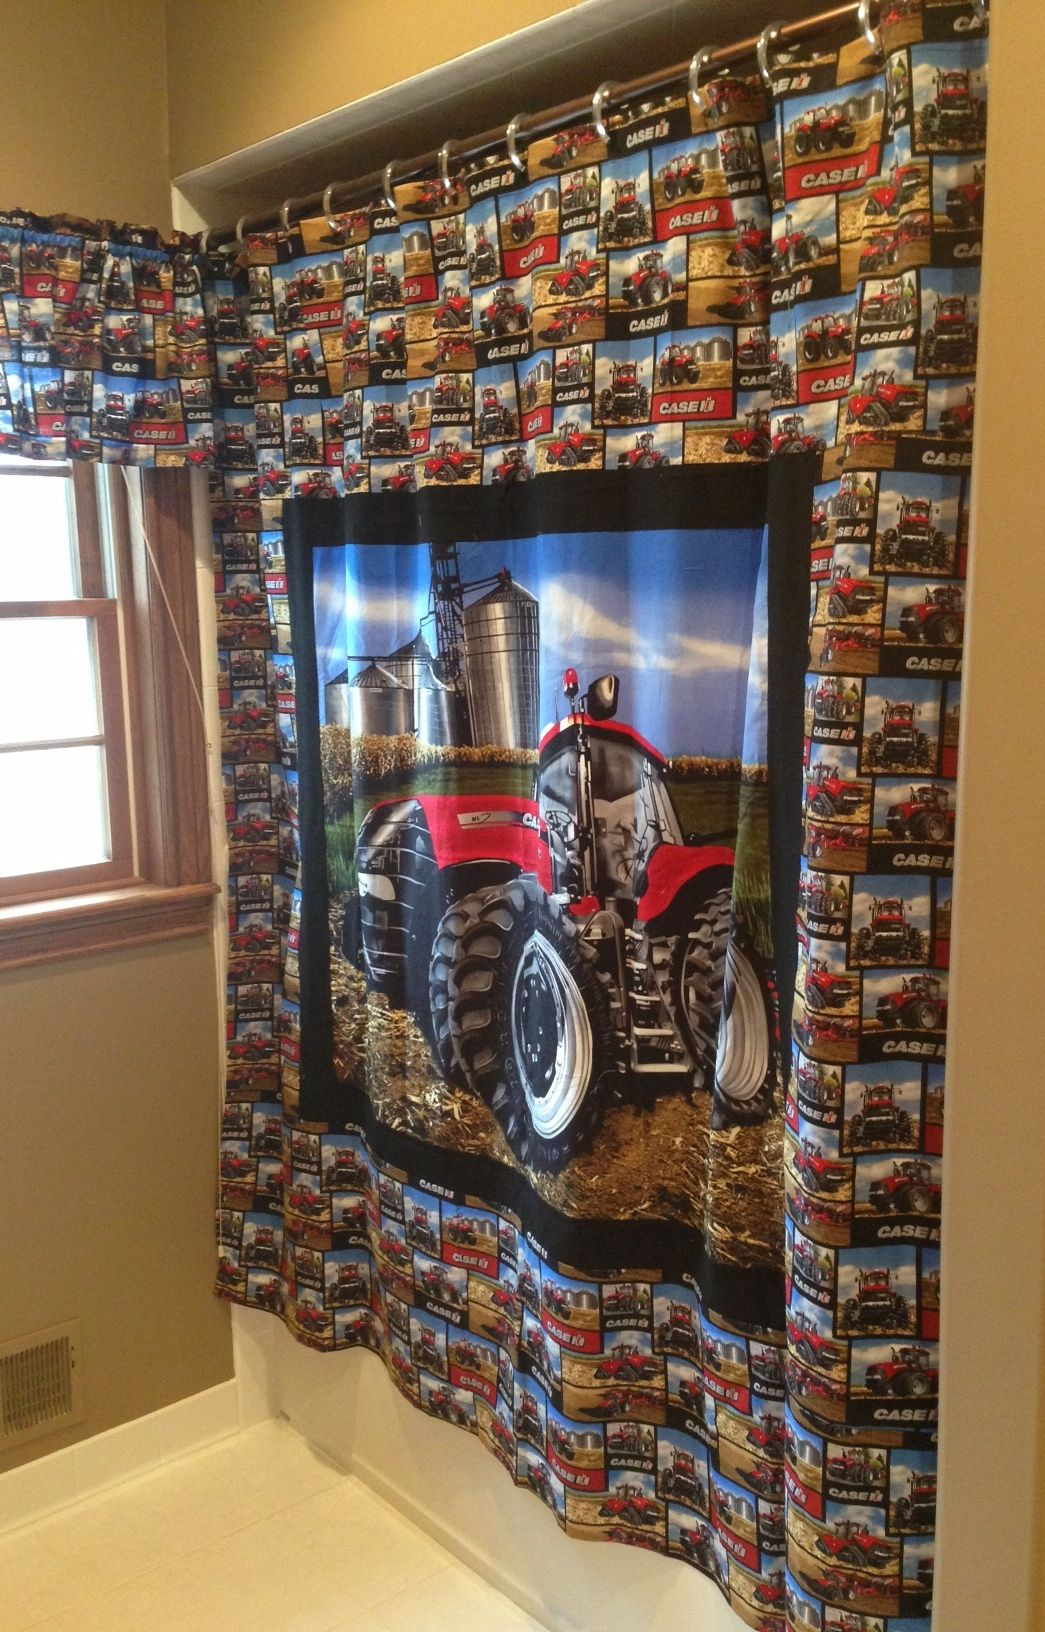 Case Ih Magnum Tractor Shower Curtain For The Bathroom With